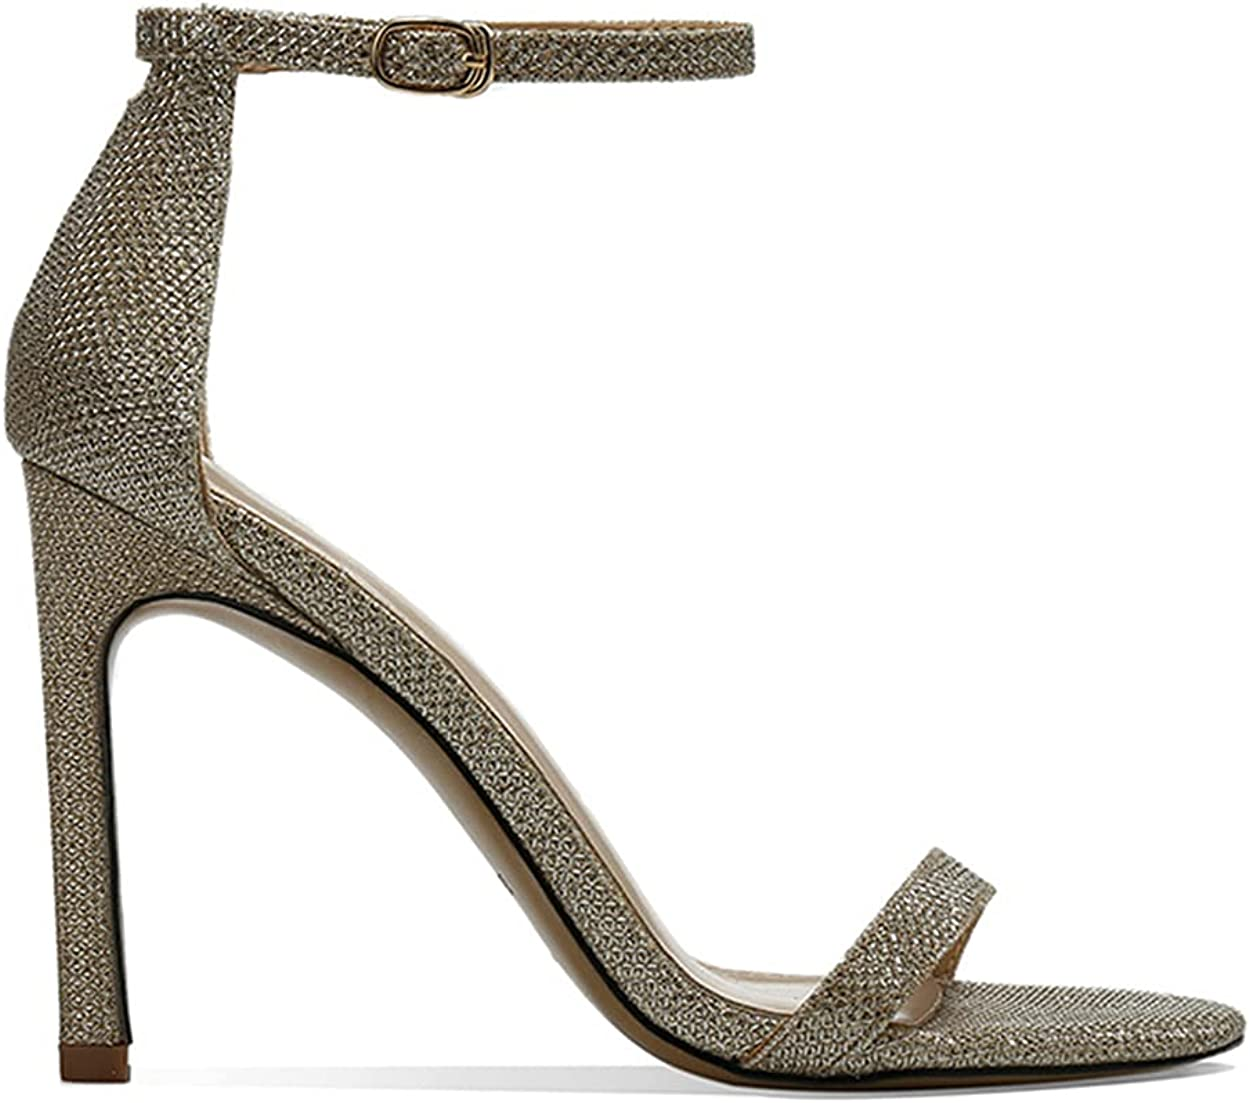 vibvib Women's Fashion Stiletto high Heel Max 44% OFF Large Time sale Siz with Sandals